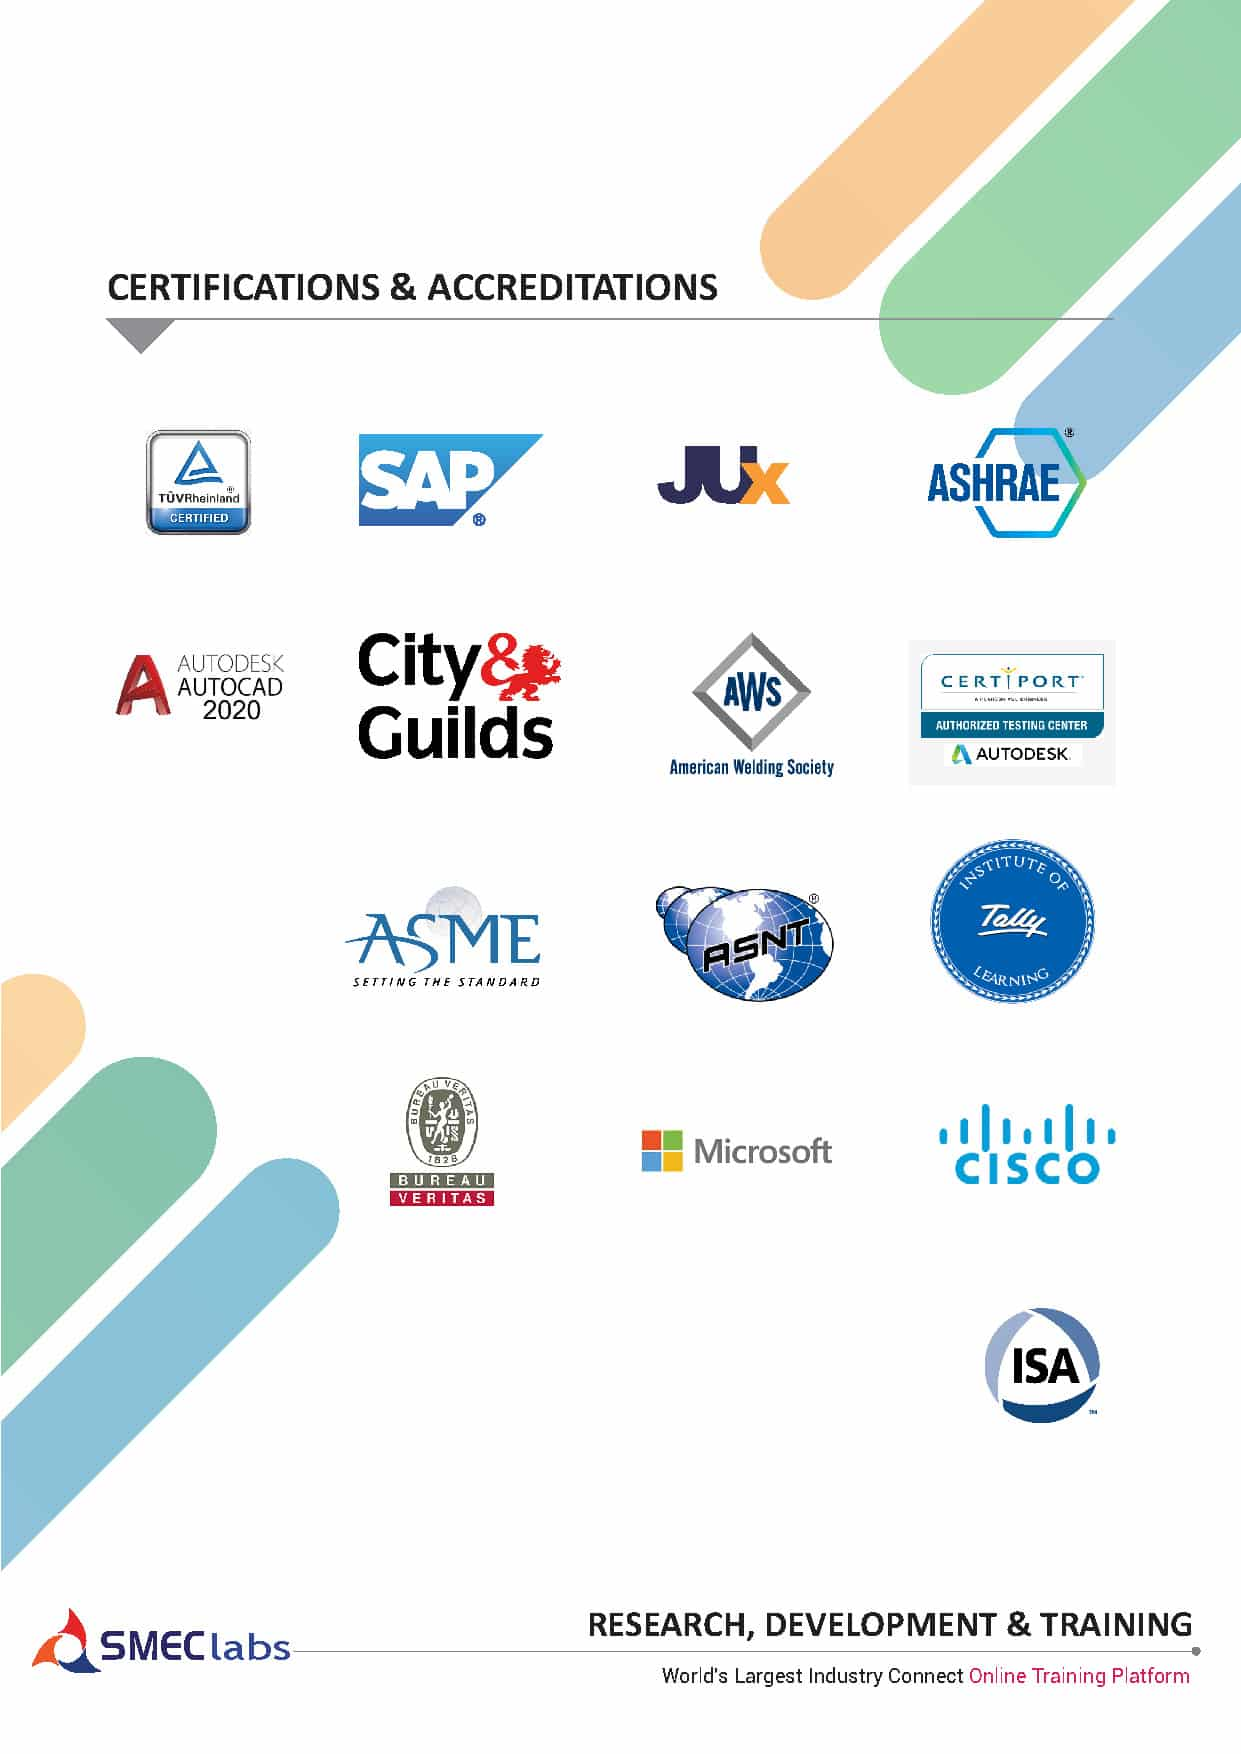 smeclabs certifications and accreditations